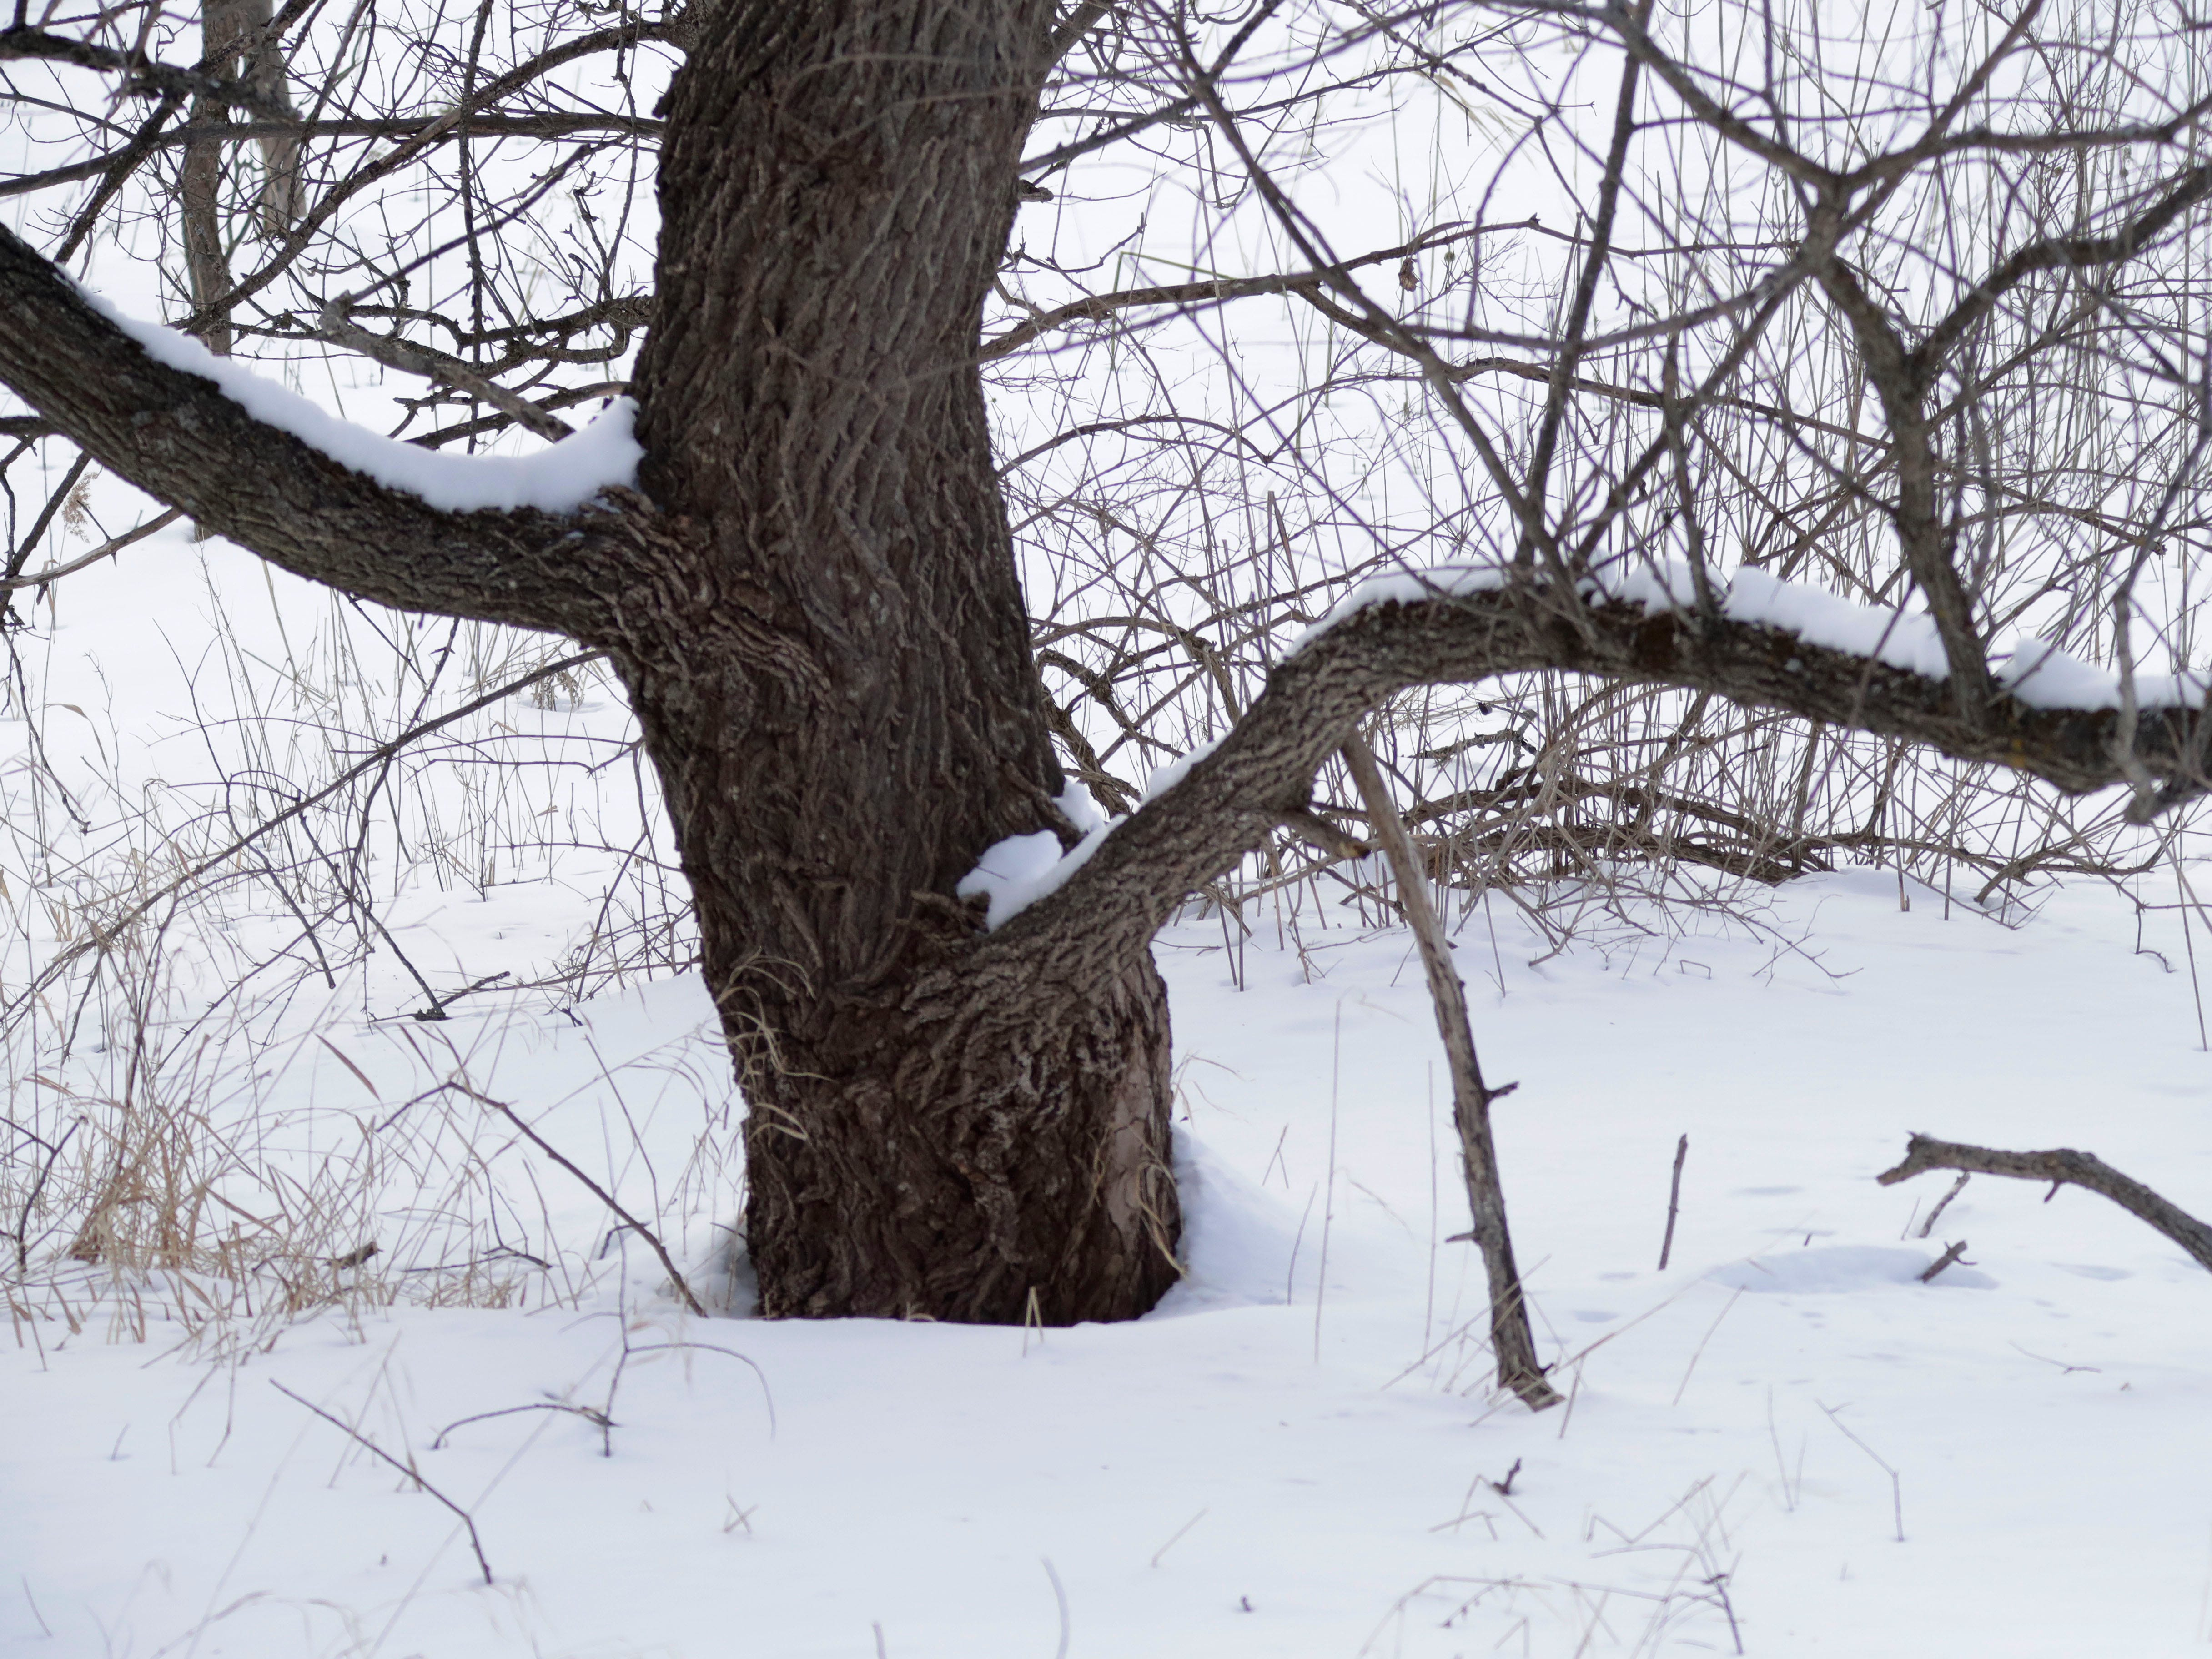 Tree branches fan out in contrast to the snow at Ellwood H. May Environmental Park, Tuesday, March 5, 2019, in Sheboygan, Wis.